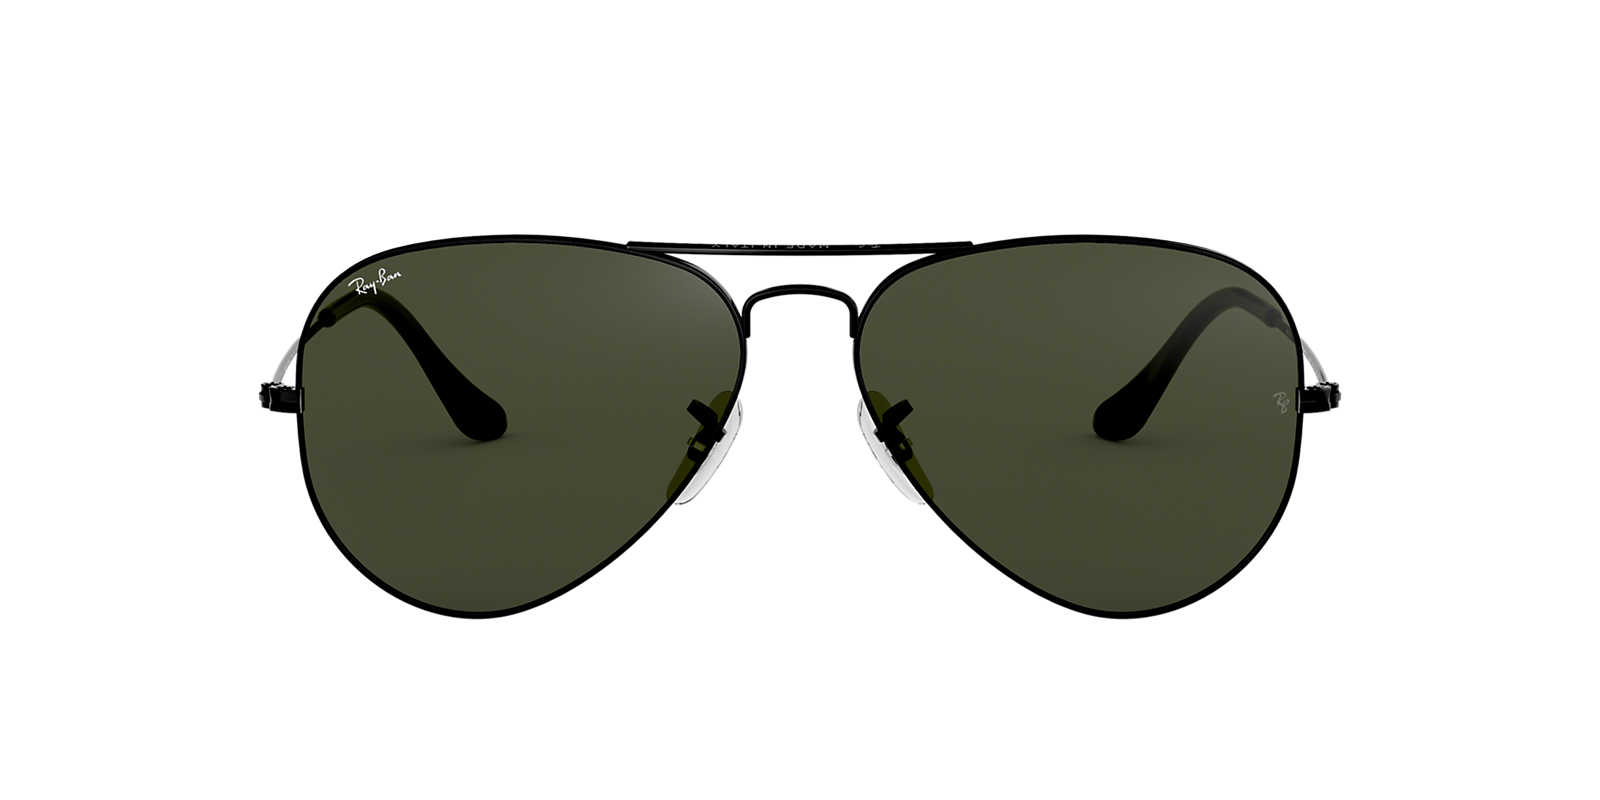 ray ban sunglasses outlet in doha  rb3025 58 original aviator rb3025 58 original aviator · ray ban